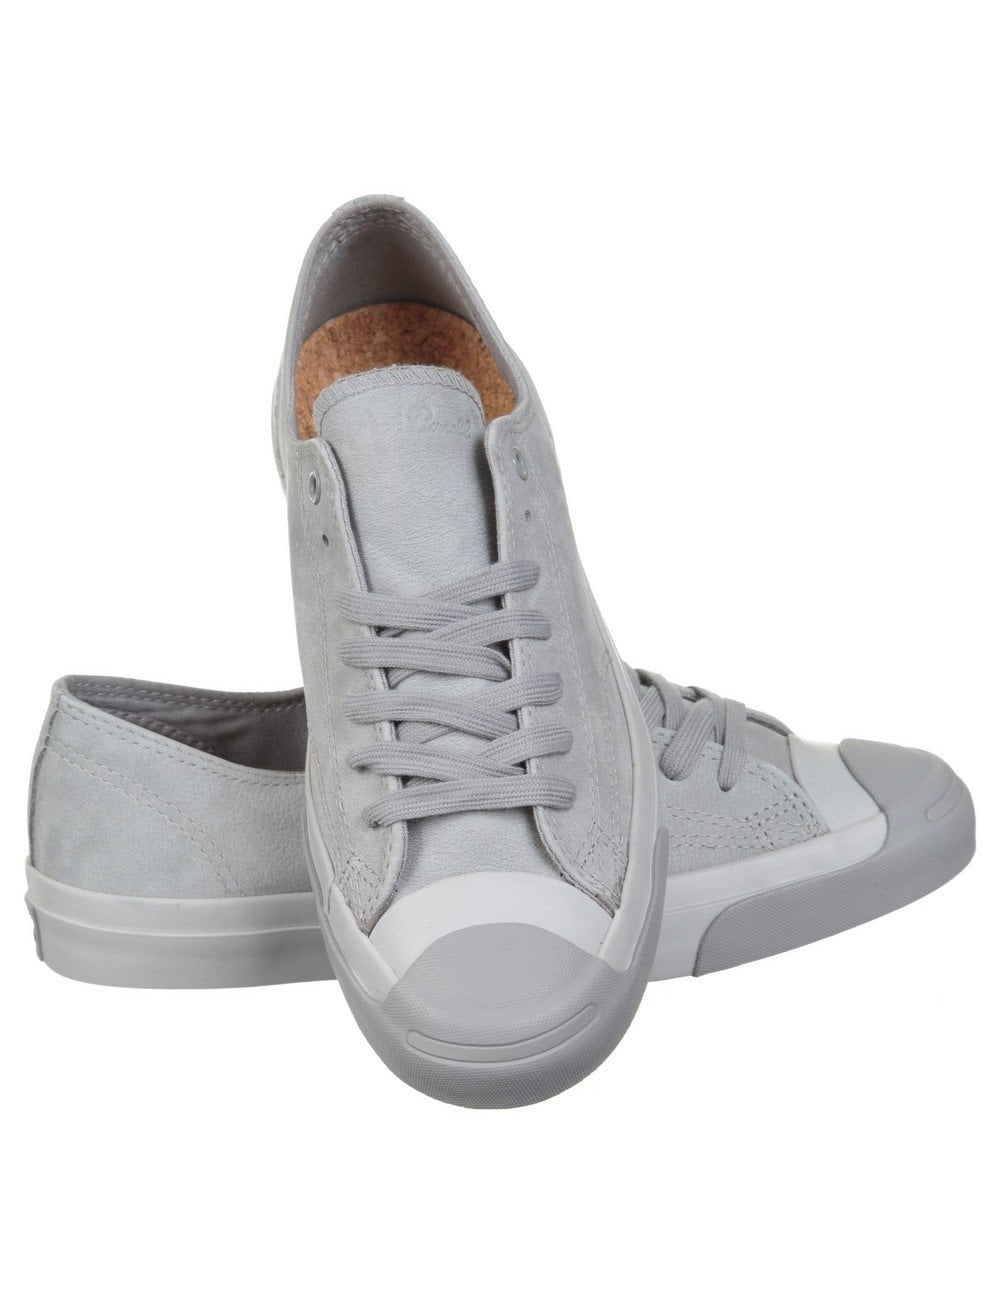 bc6258391c780a Converse Jack Purcell Jack Ox Shoes - Dolphin Dolphin - Footwear ...